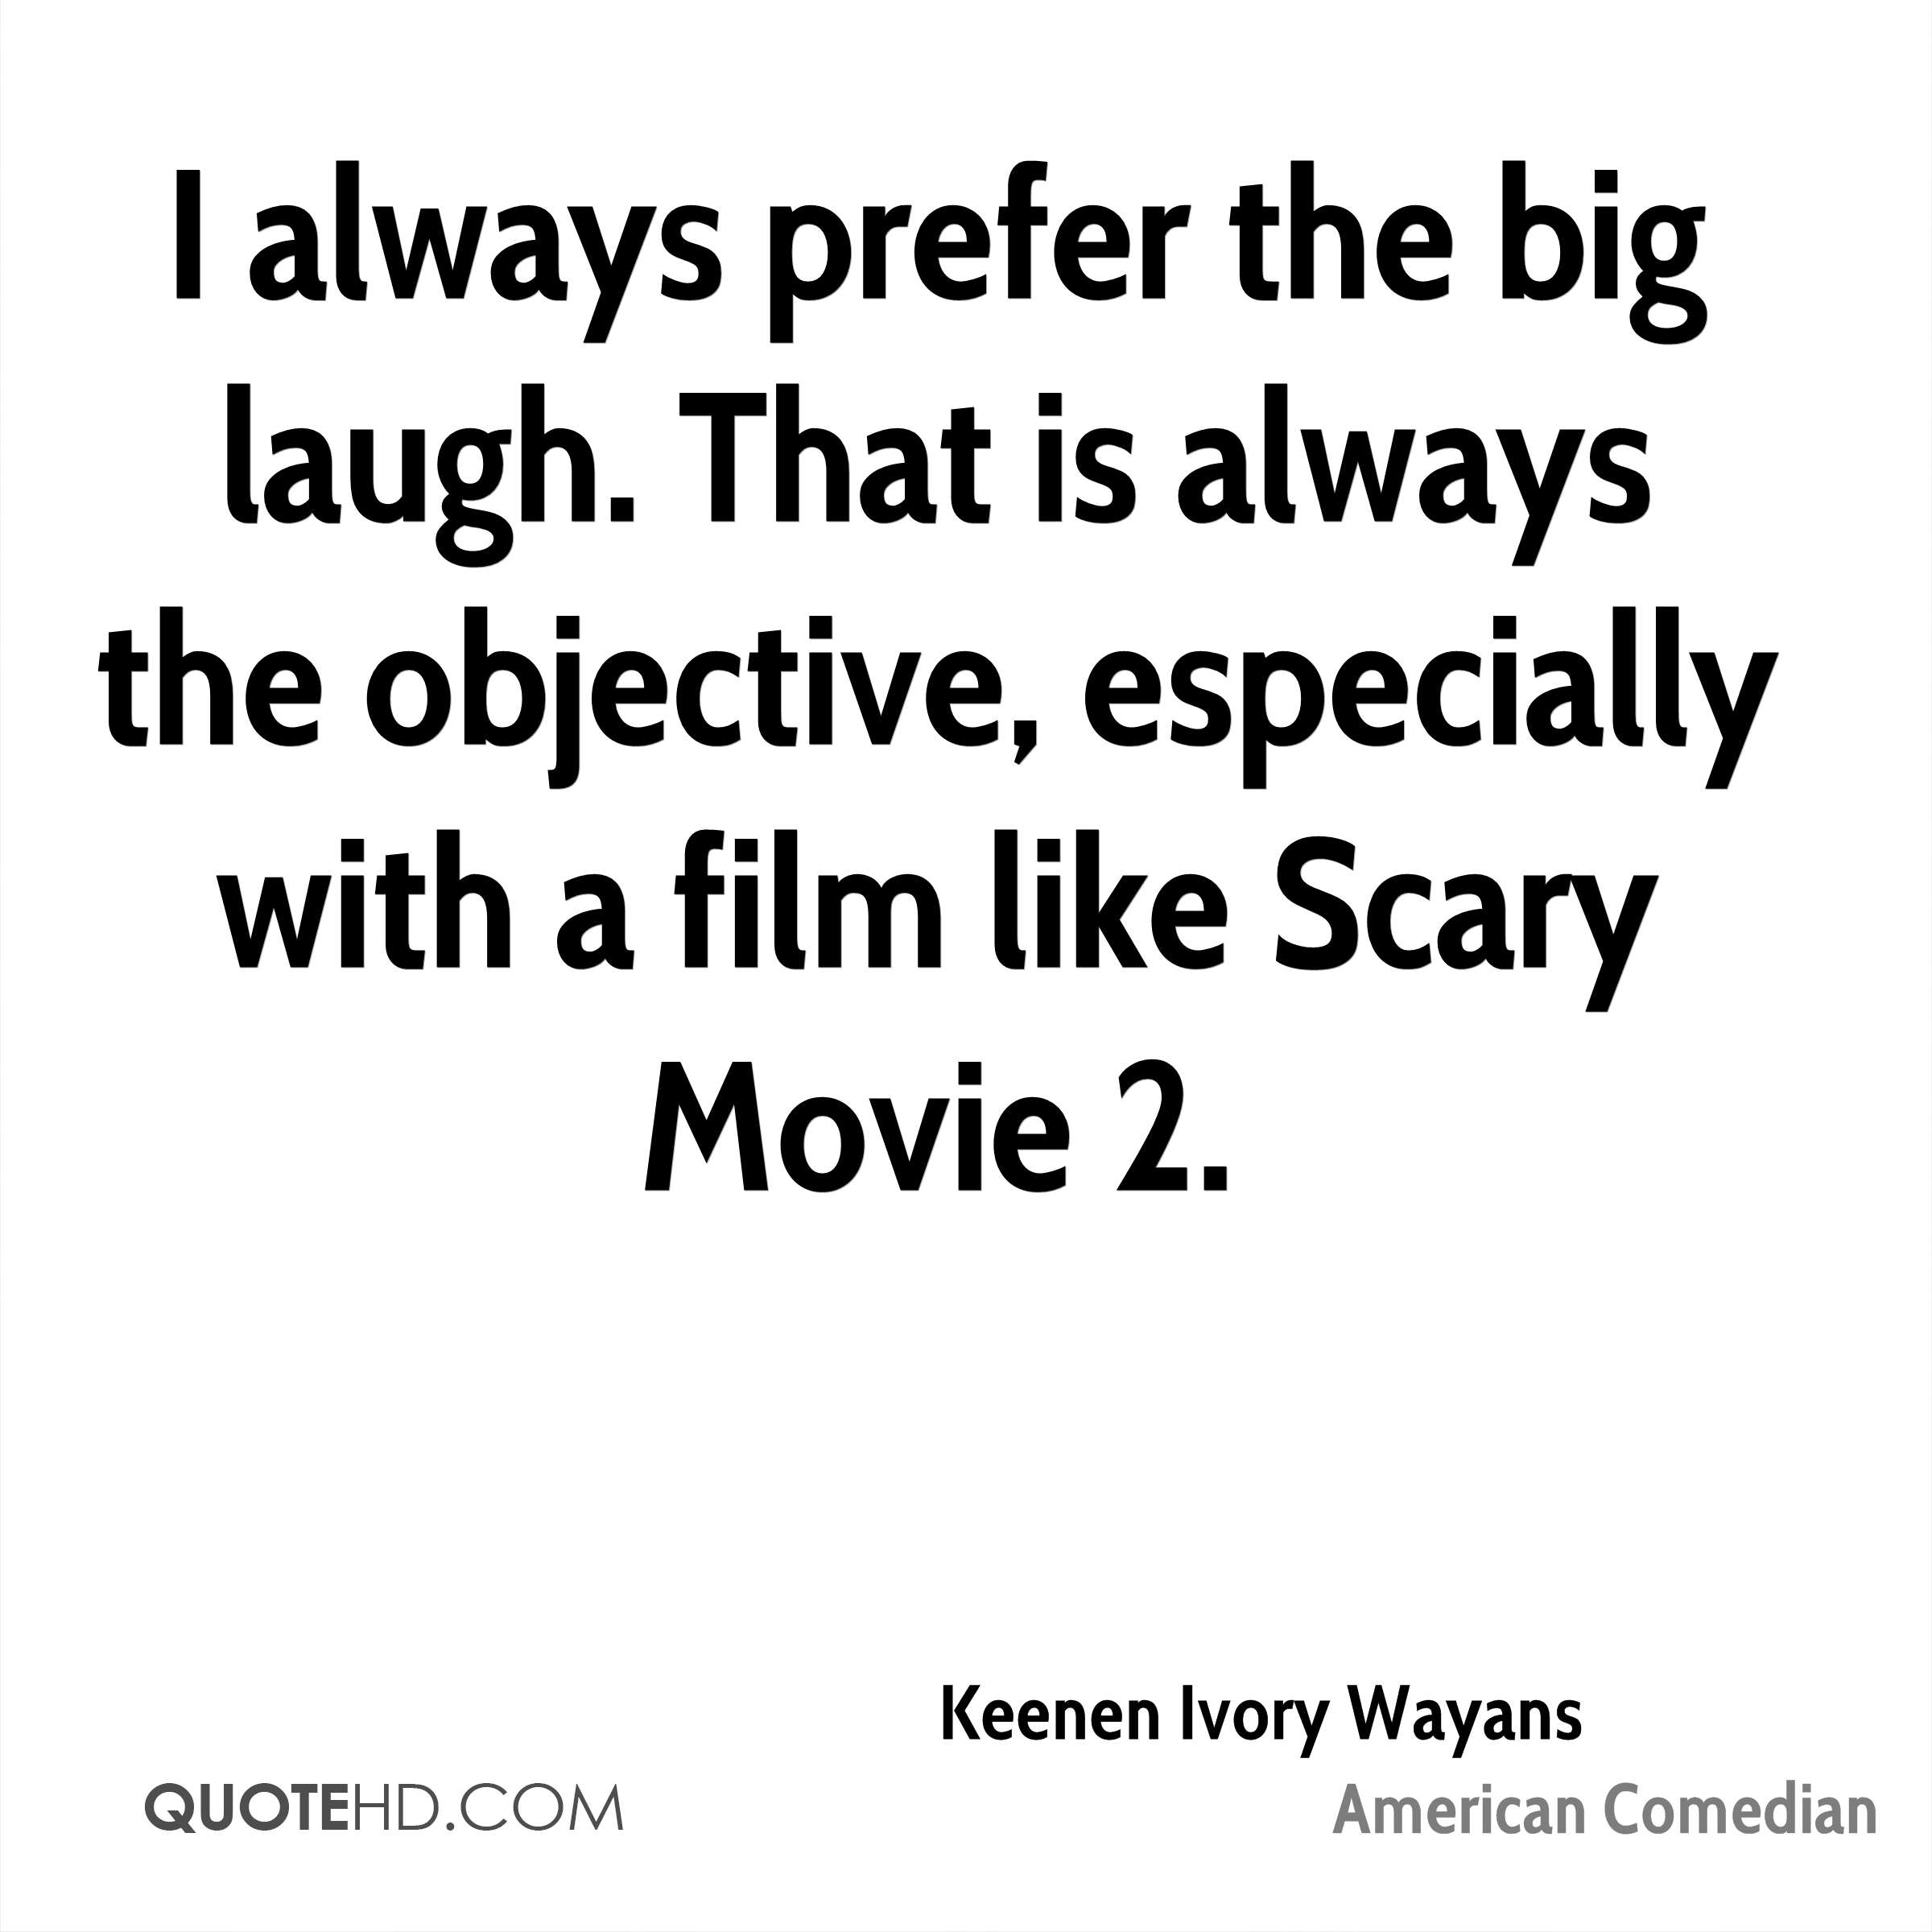 I always prefer the big laugh. That is always the objective, especially with a film like Scary Movie 2.